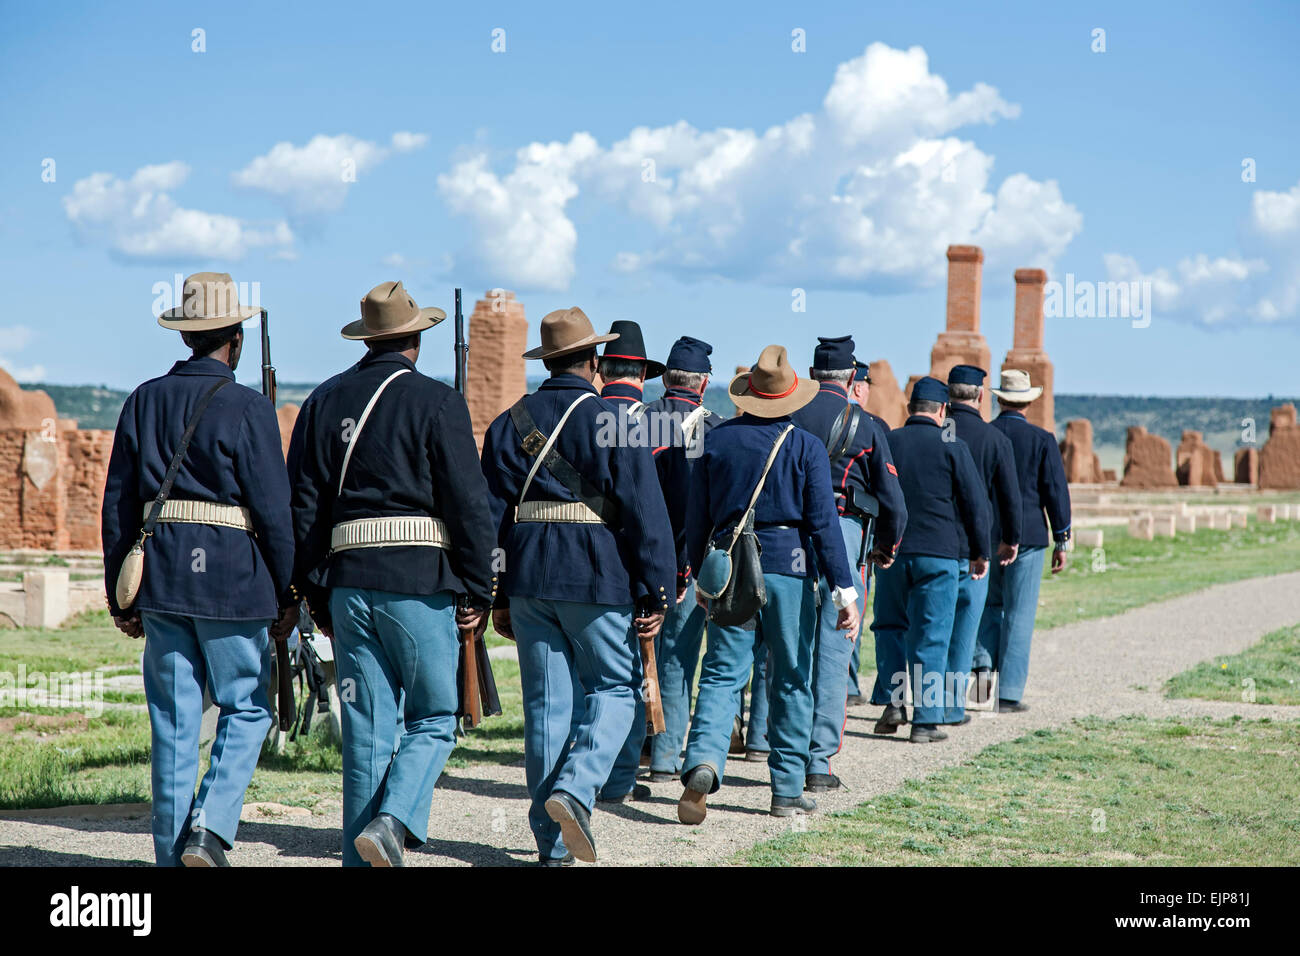 Civil war era union soldier reenactors marching in formation fort union national monument new